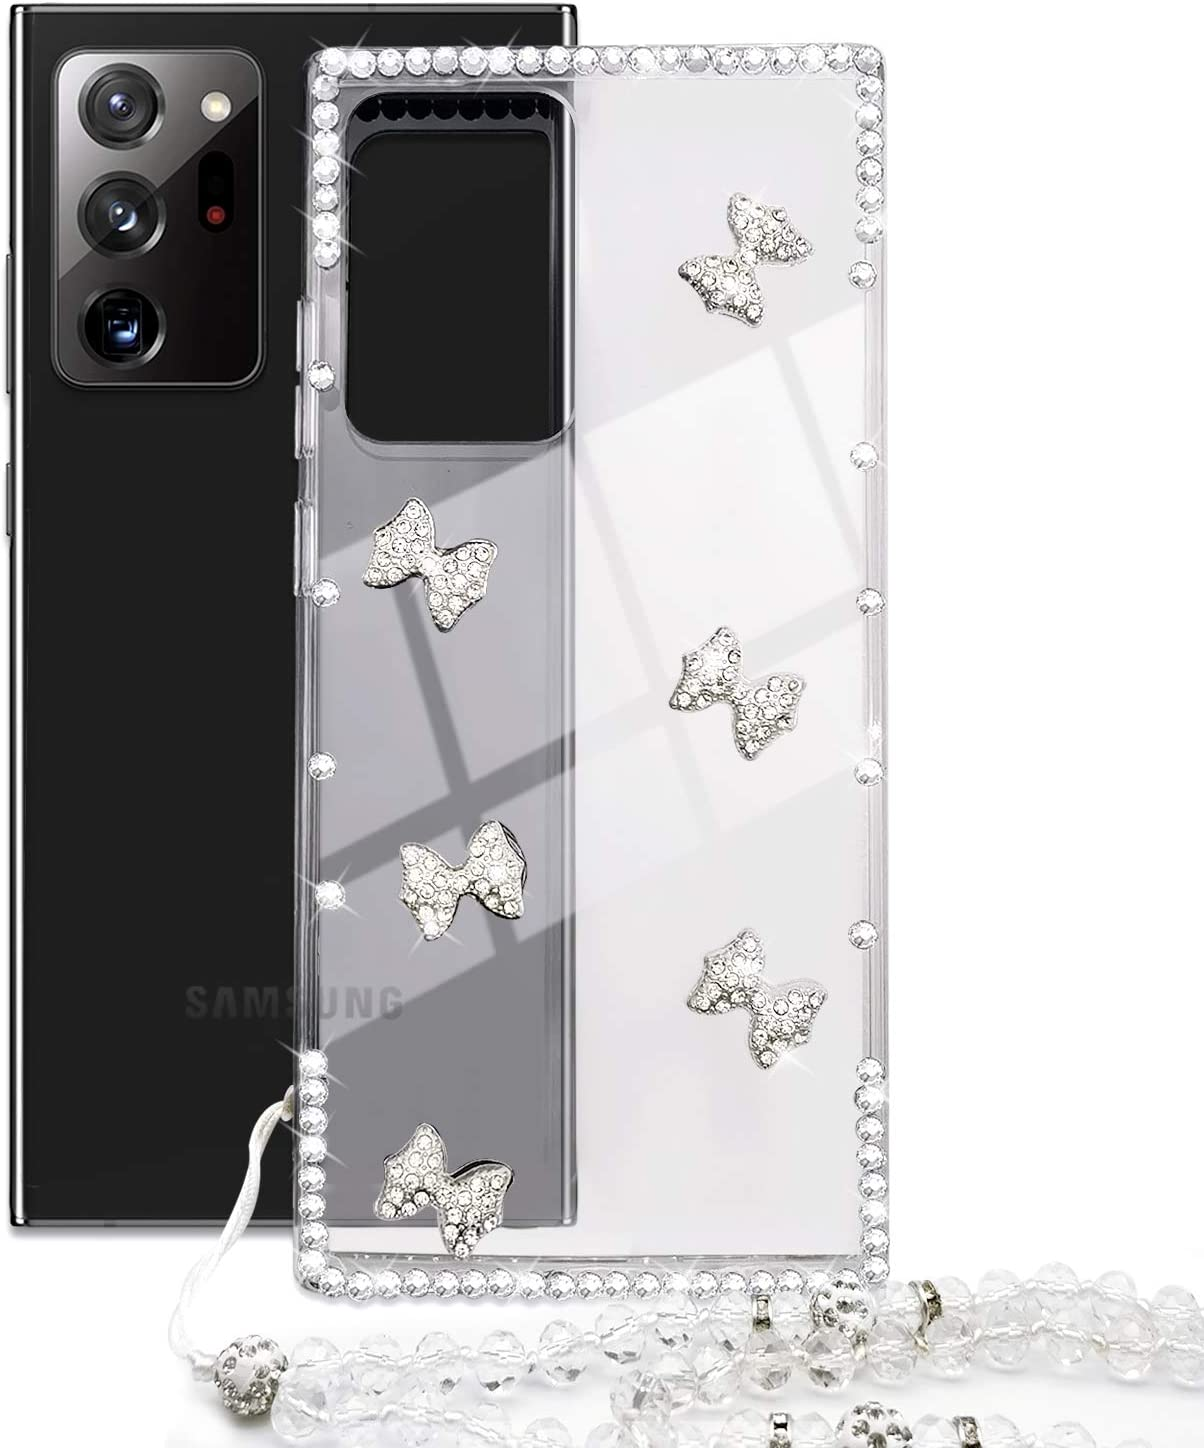 Omorro for Galaxy Note 20 Ultra Clear Case for Women, Glitter Rhinestone Bow Knot Girly Case with Shiny Crystal Lanyard Side Bling Diamond Shock Absorption Case Soft TPU Clear Slim Protective Case